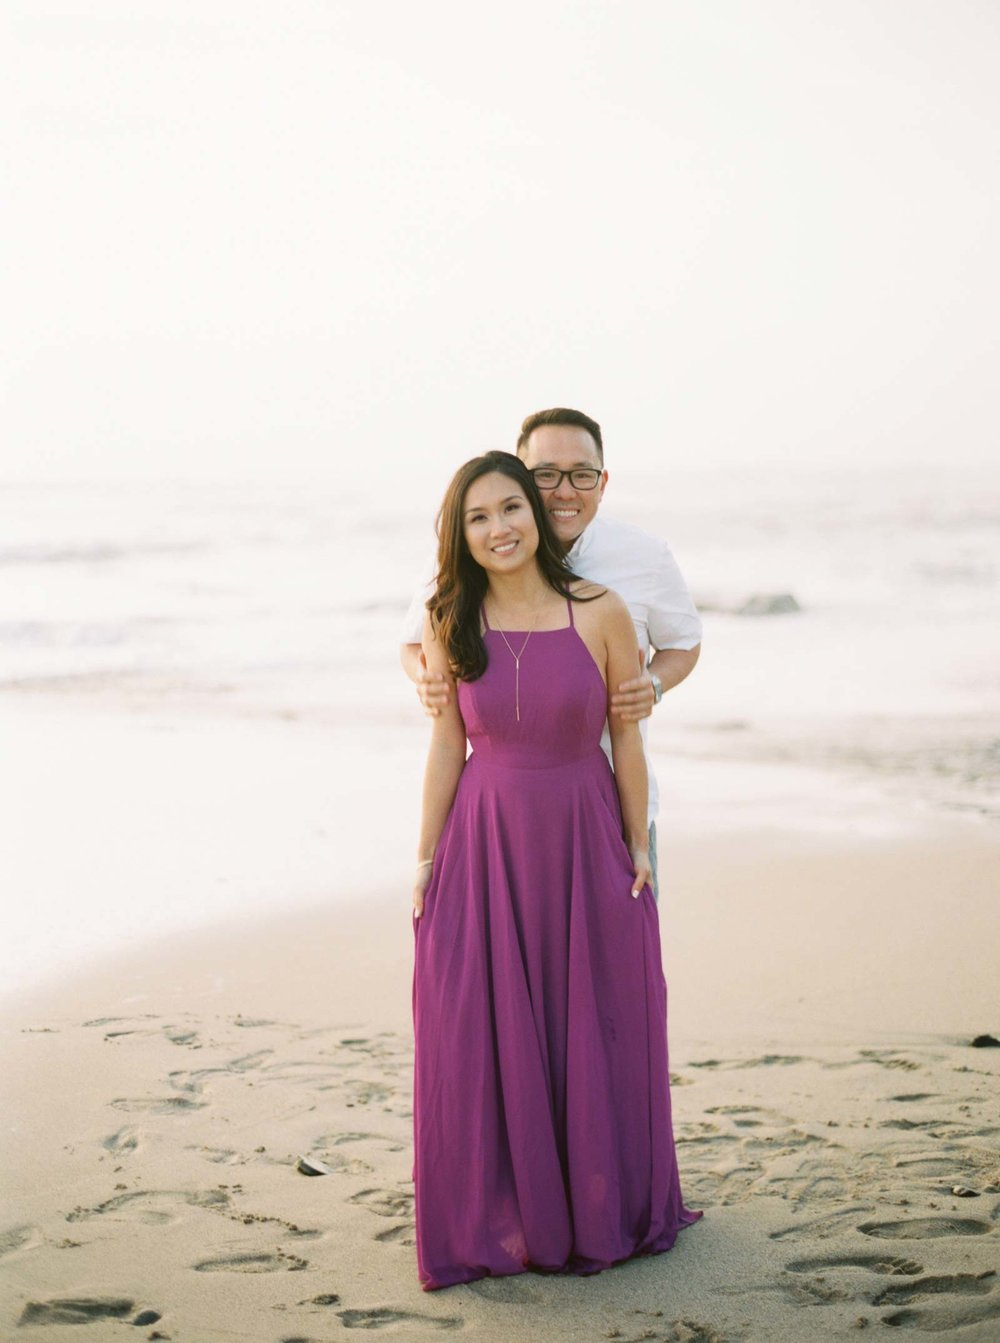 Moss-beach-engagement-photos-half-moon-bay-19.jpg